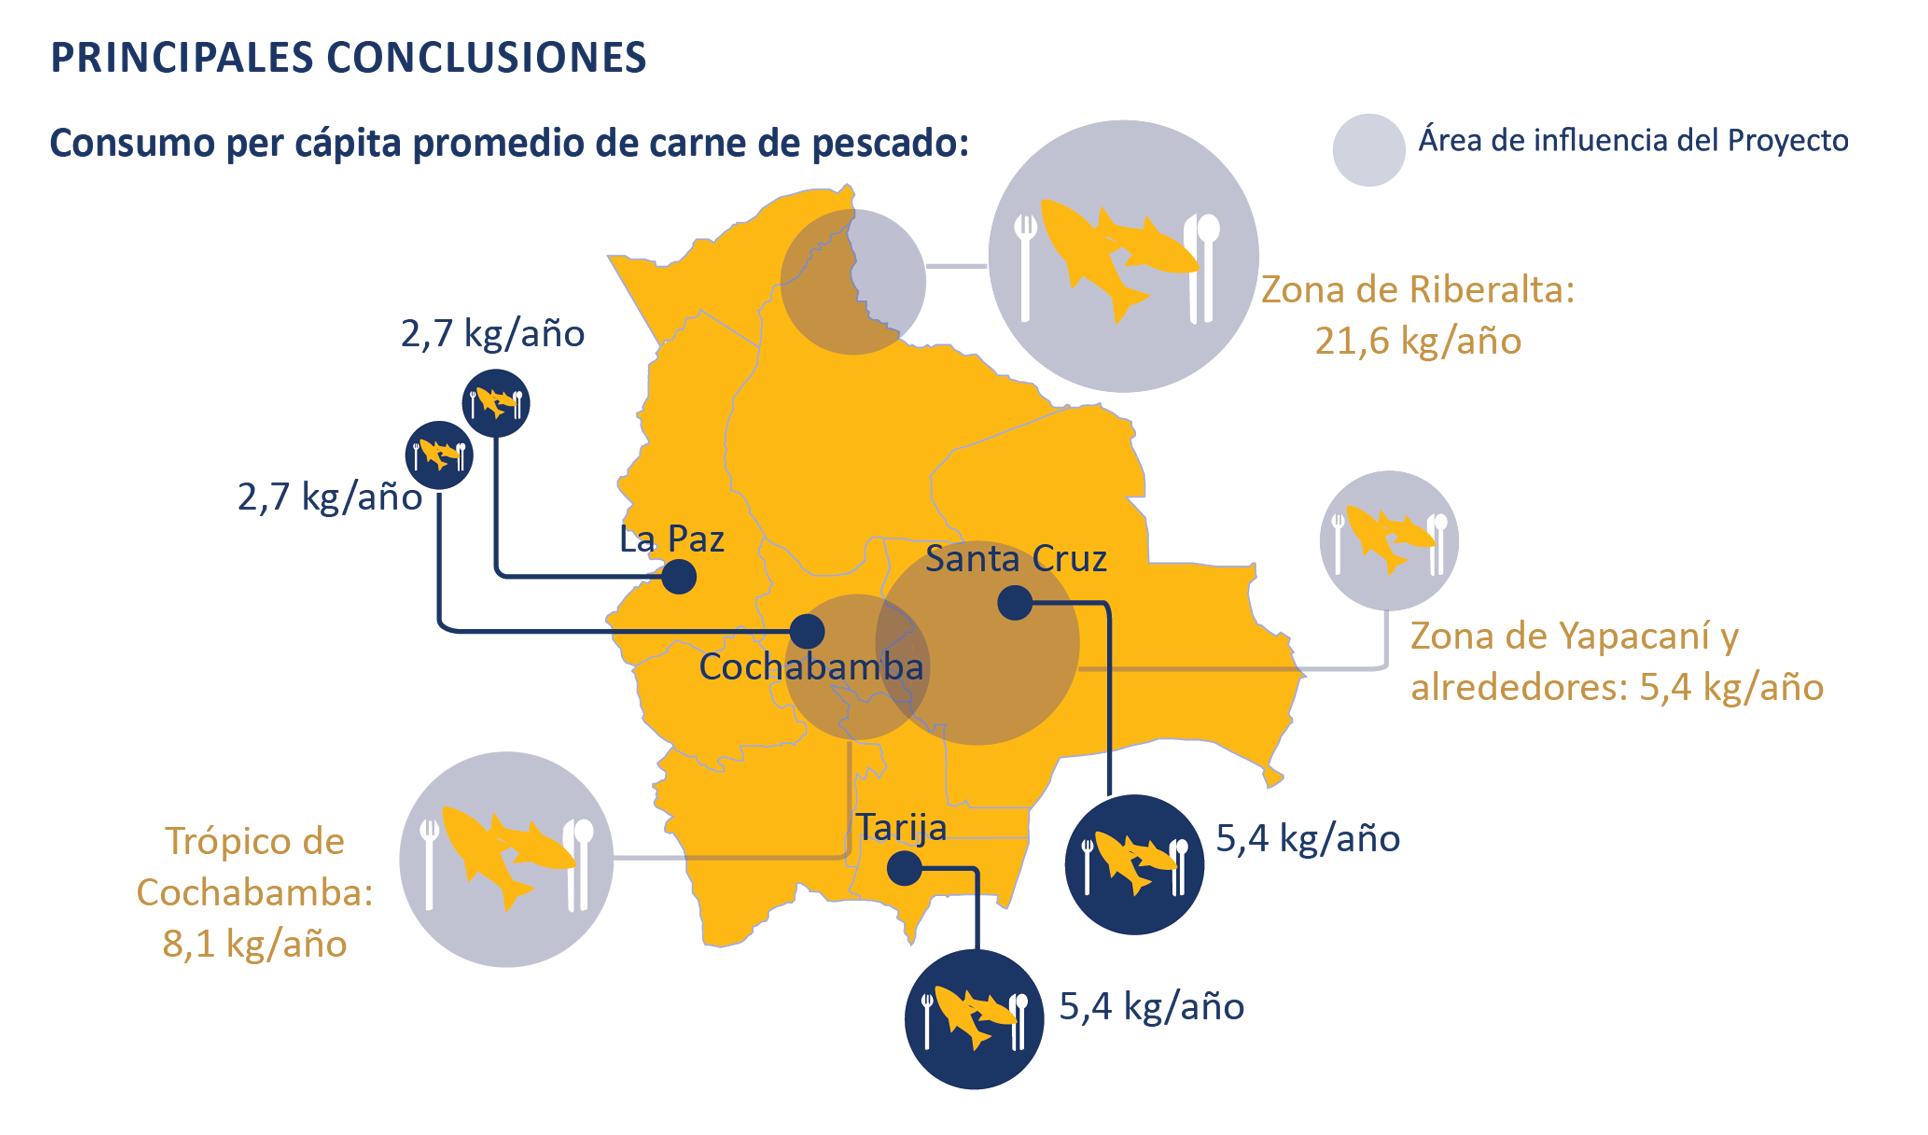 New information about fish handling, fish quality, and fish consumption in major Bolivian urban centers and in the project areas